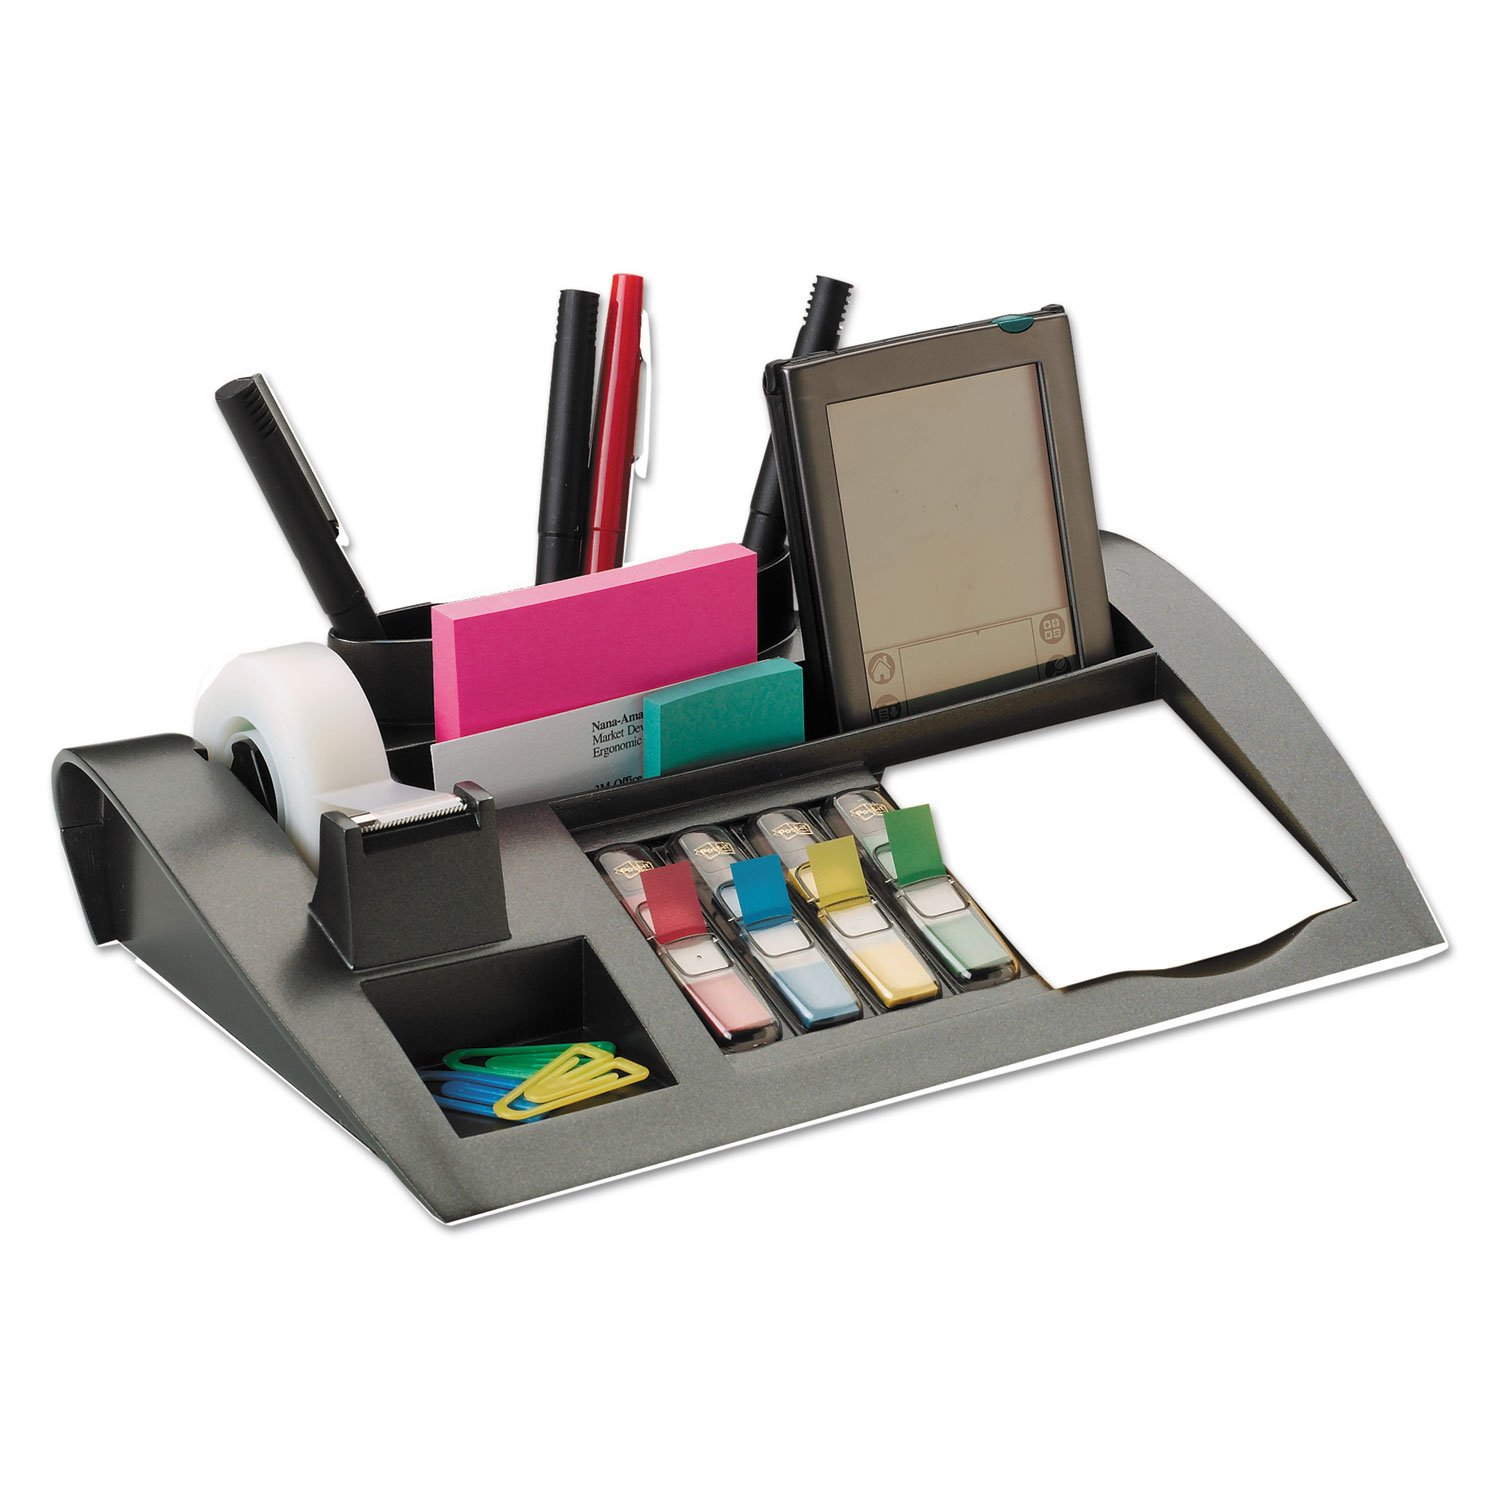 Post-it C50 Notes Dispenser with Weighted Base, Plastic, 10 1/4-Inch x 6 3/4-Inch x 2 3/4-Inch, Black by Post-it